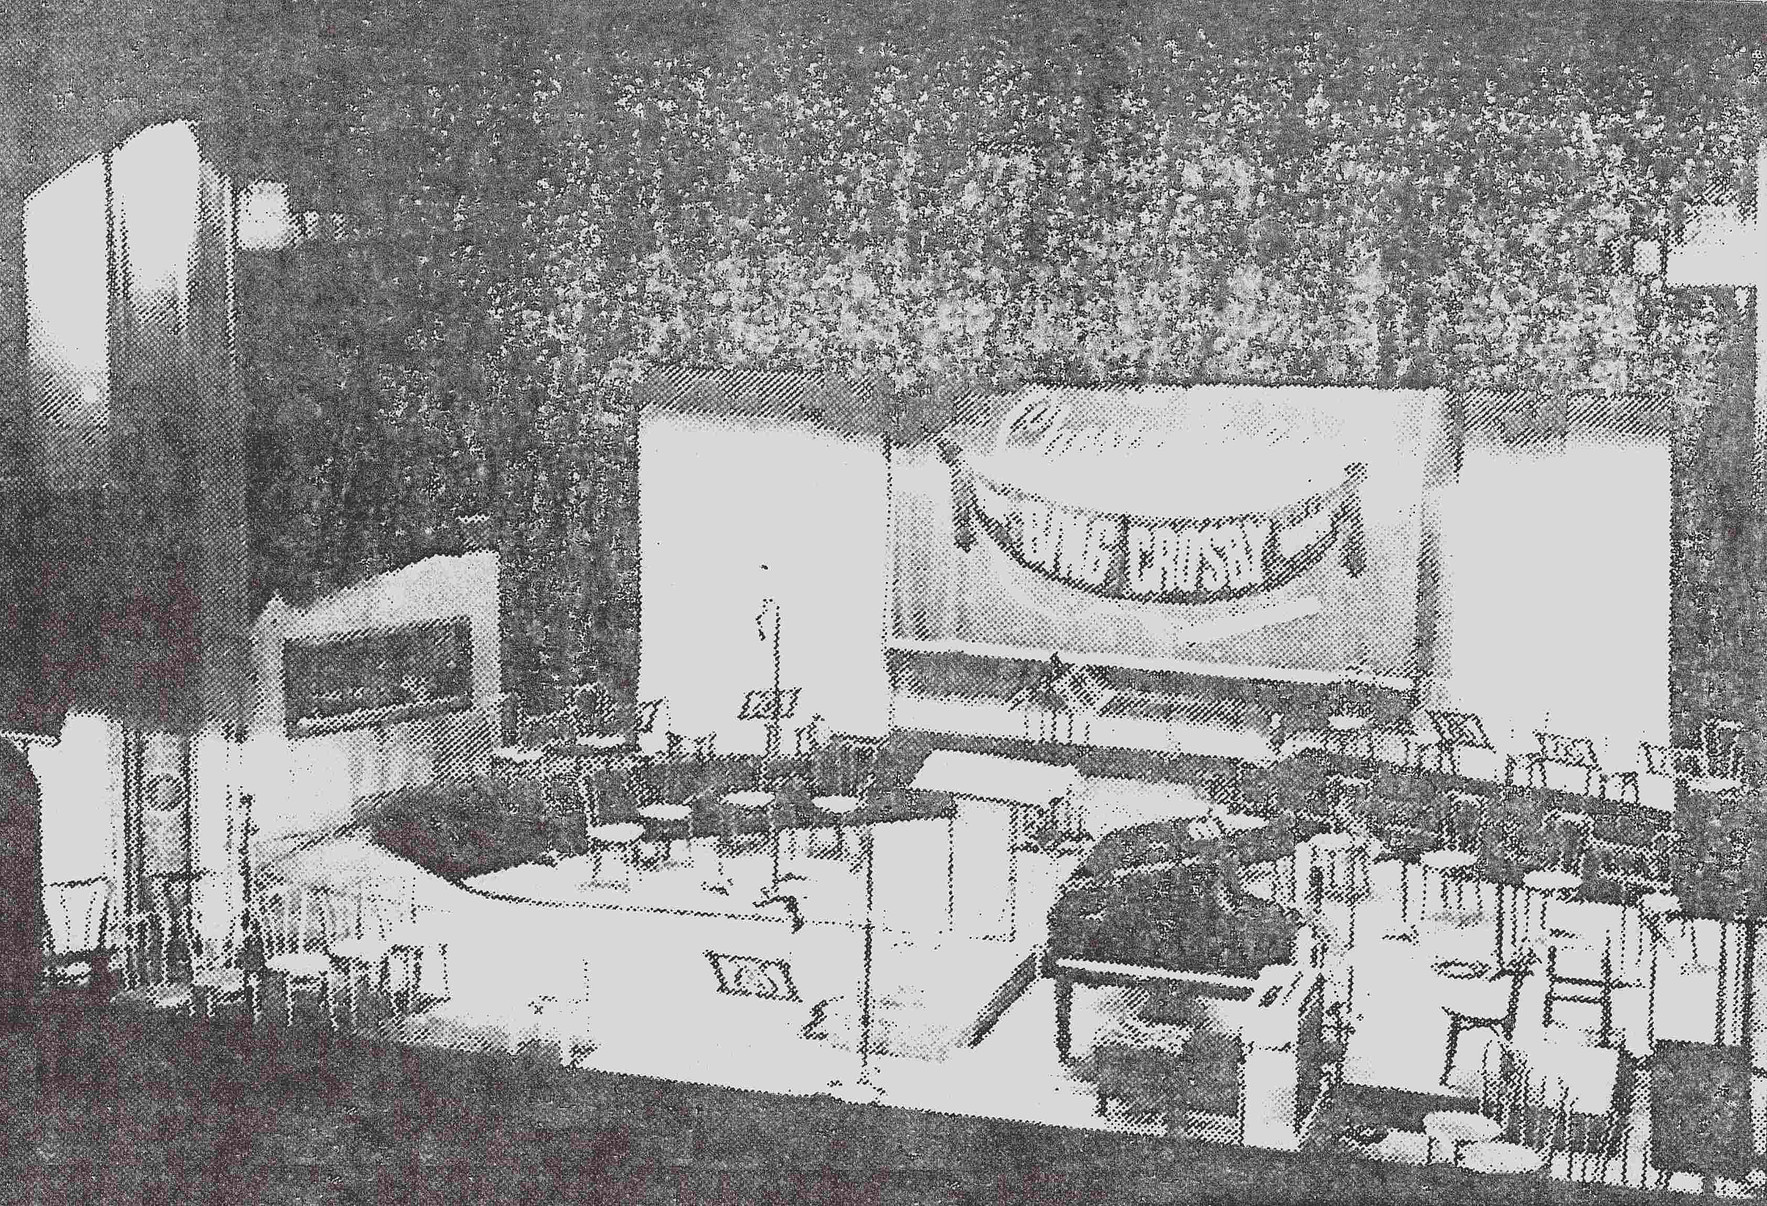 A rare although poor quality image of the Vine Street Theater (now The Montalban Theater), set-up for the Bing Crosby Show (Norm Dewes/BCE/RP)